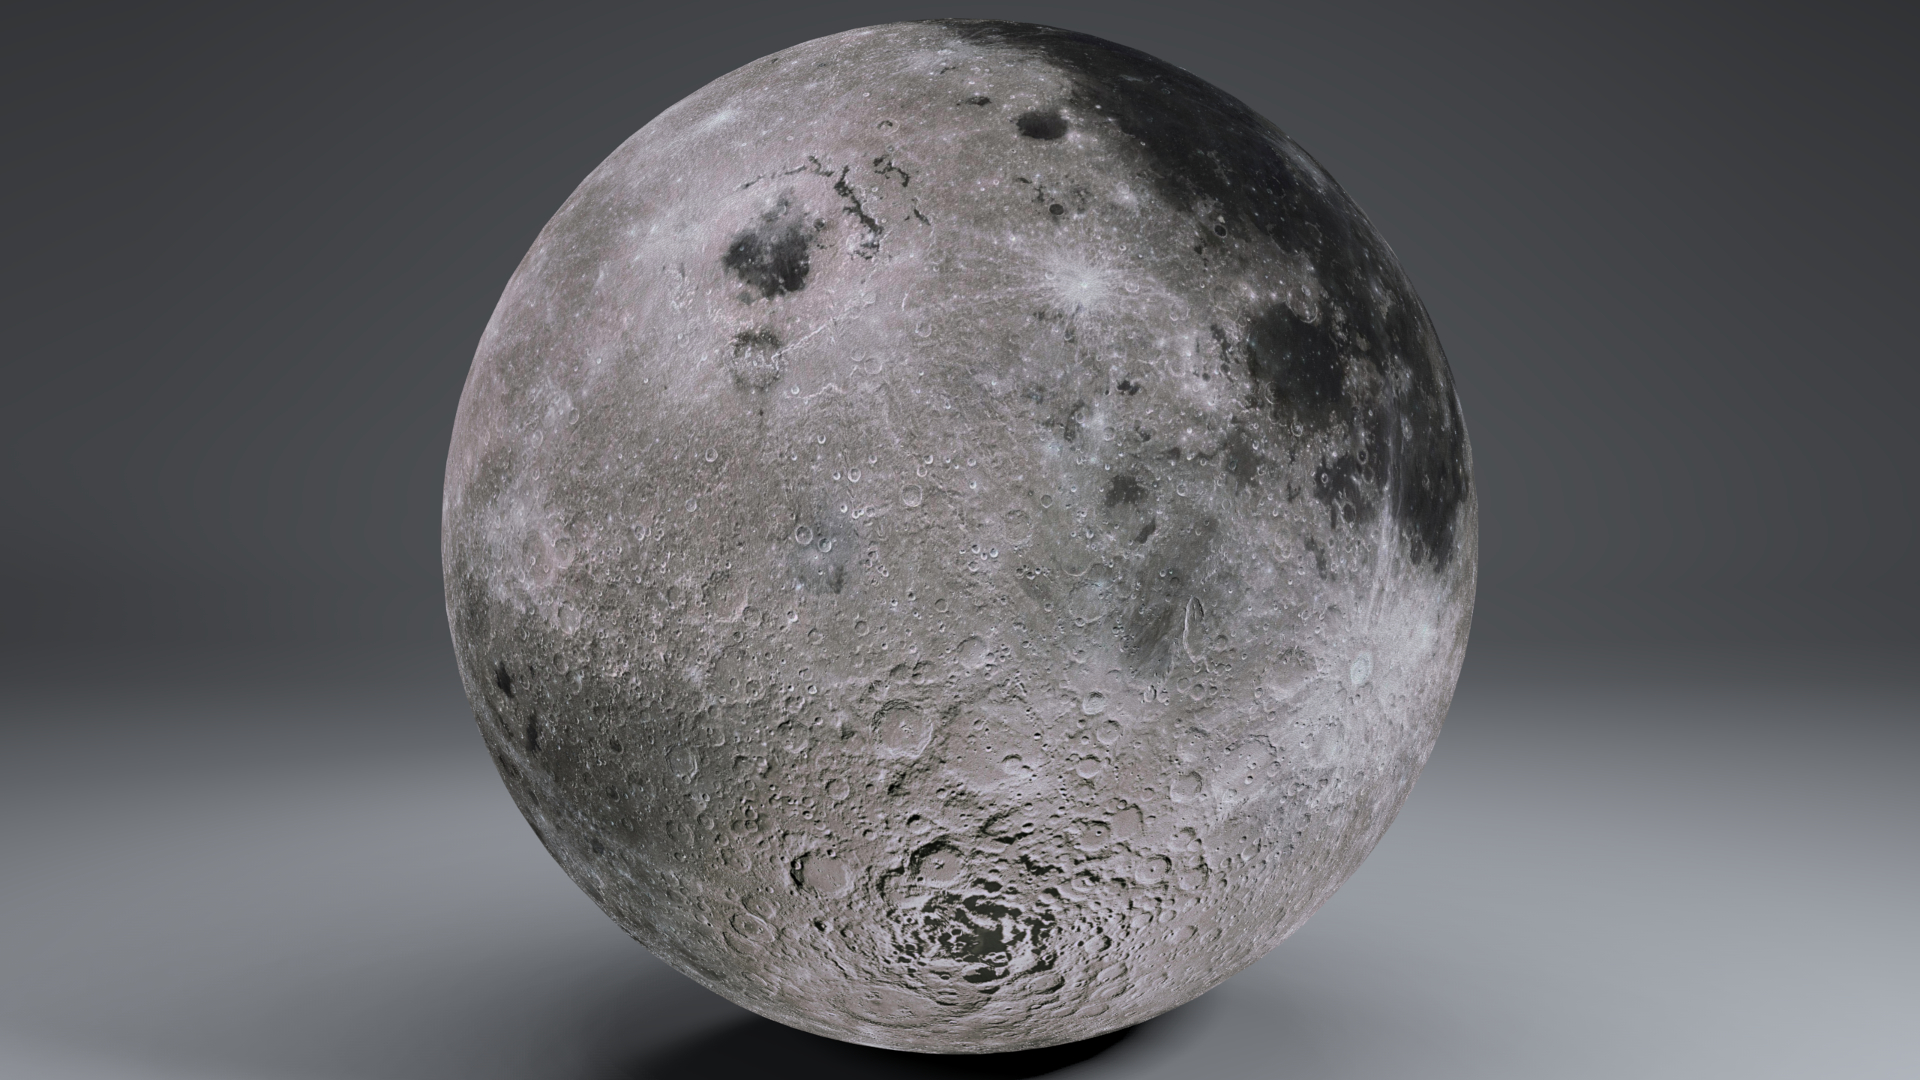 moonglobe 8k 3d model 3ds fbx blend dae obj 221867